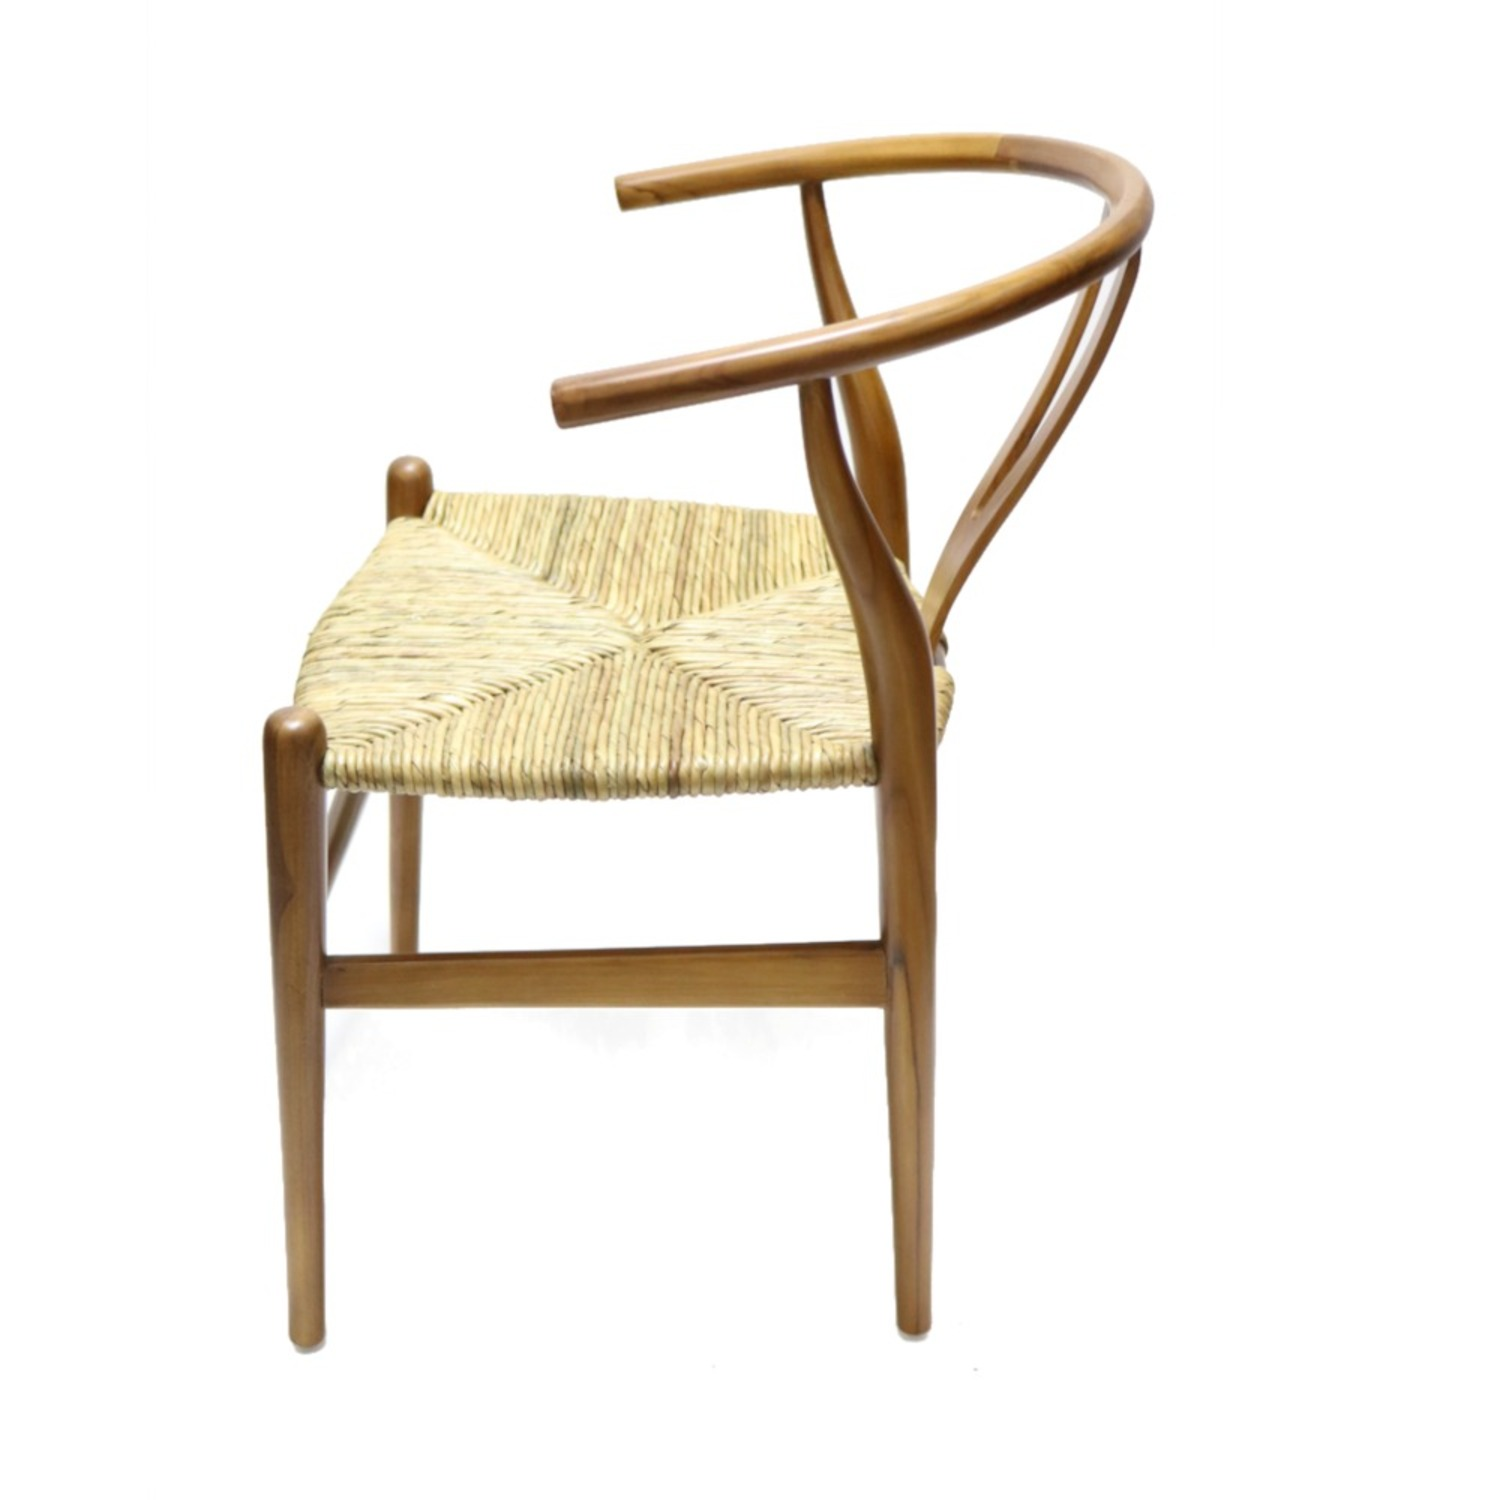 Dining Chair In Walnut Frame & Natural Hemp Seat - image-4